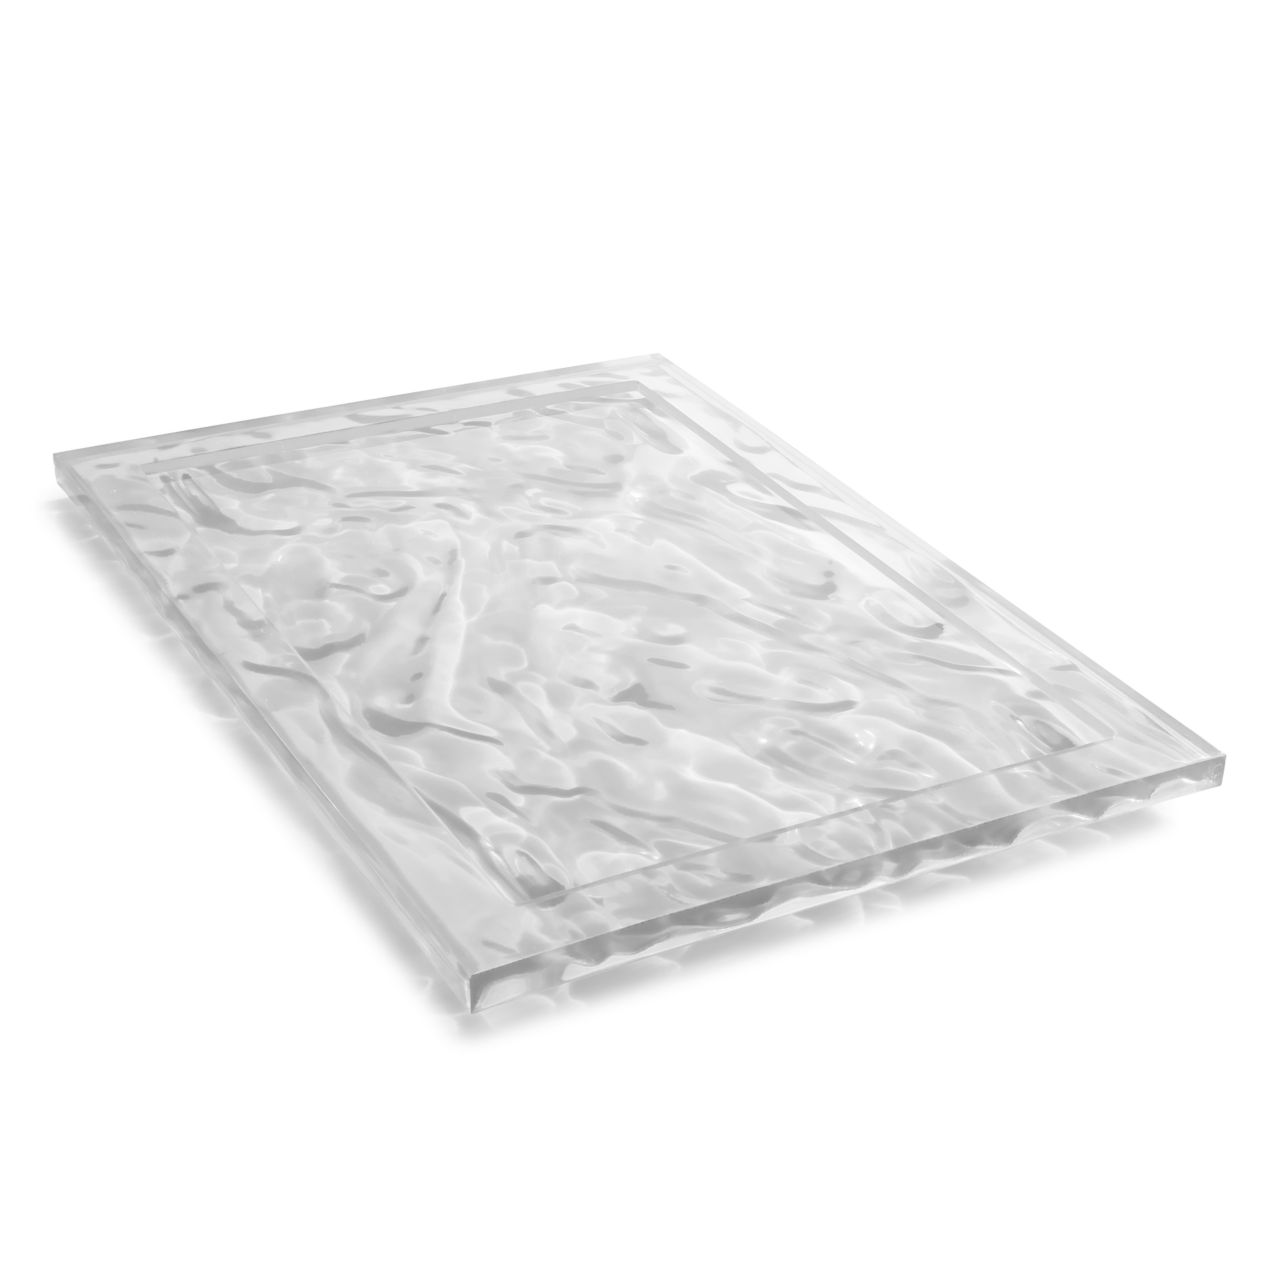 Dune Serving Tray in Crystal 181 in Wide by Kartell